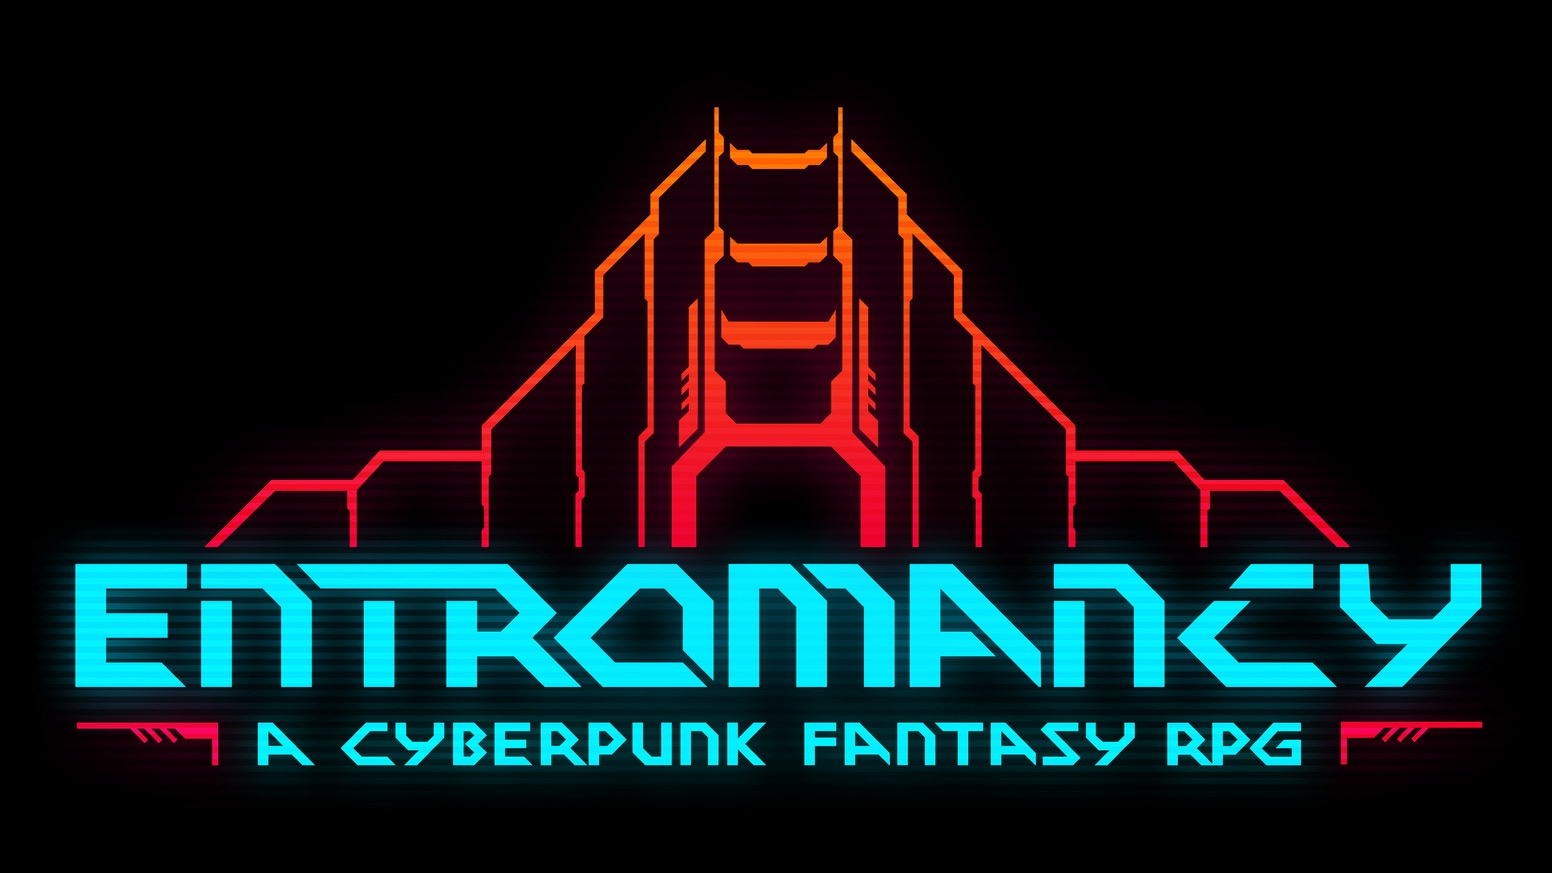 Dive into a cyberpunk urban fantasy world filled with magic, espionage, hacking, and gunslinging action!